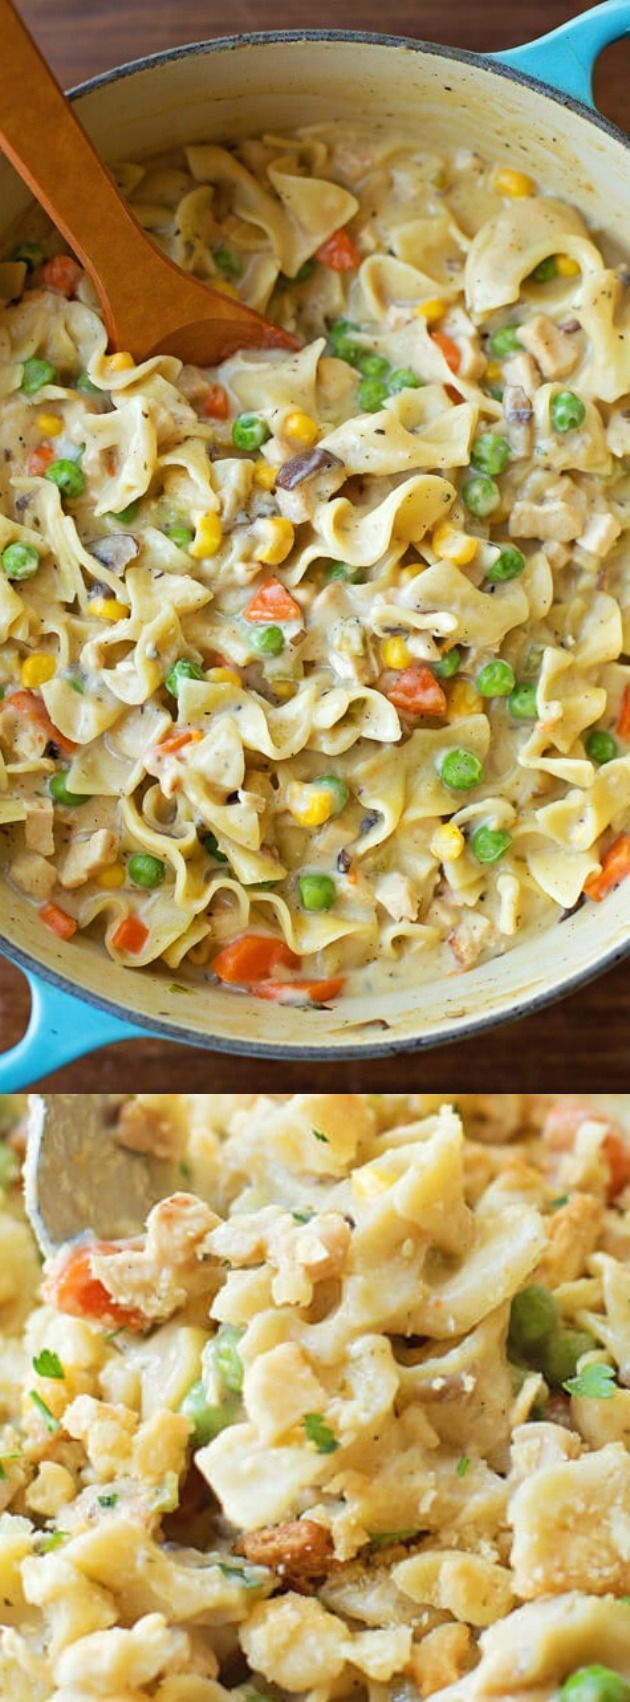 This One-Pot Creamy Chicken Pot Pie Noodles from Life Made Simple has all of the comfort of a chicken pot pie in an easy to make dinner recipe! It makes an amazingly creamy, flavorful and filling dinner! The recipe is budget friendly and will feed a hungr